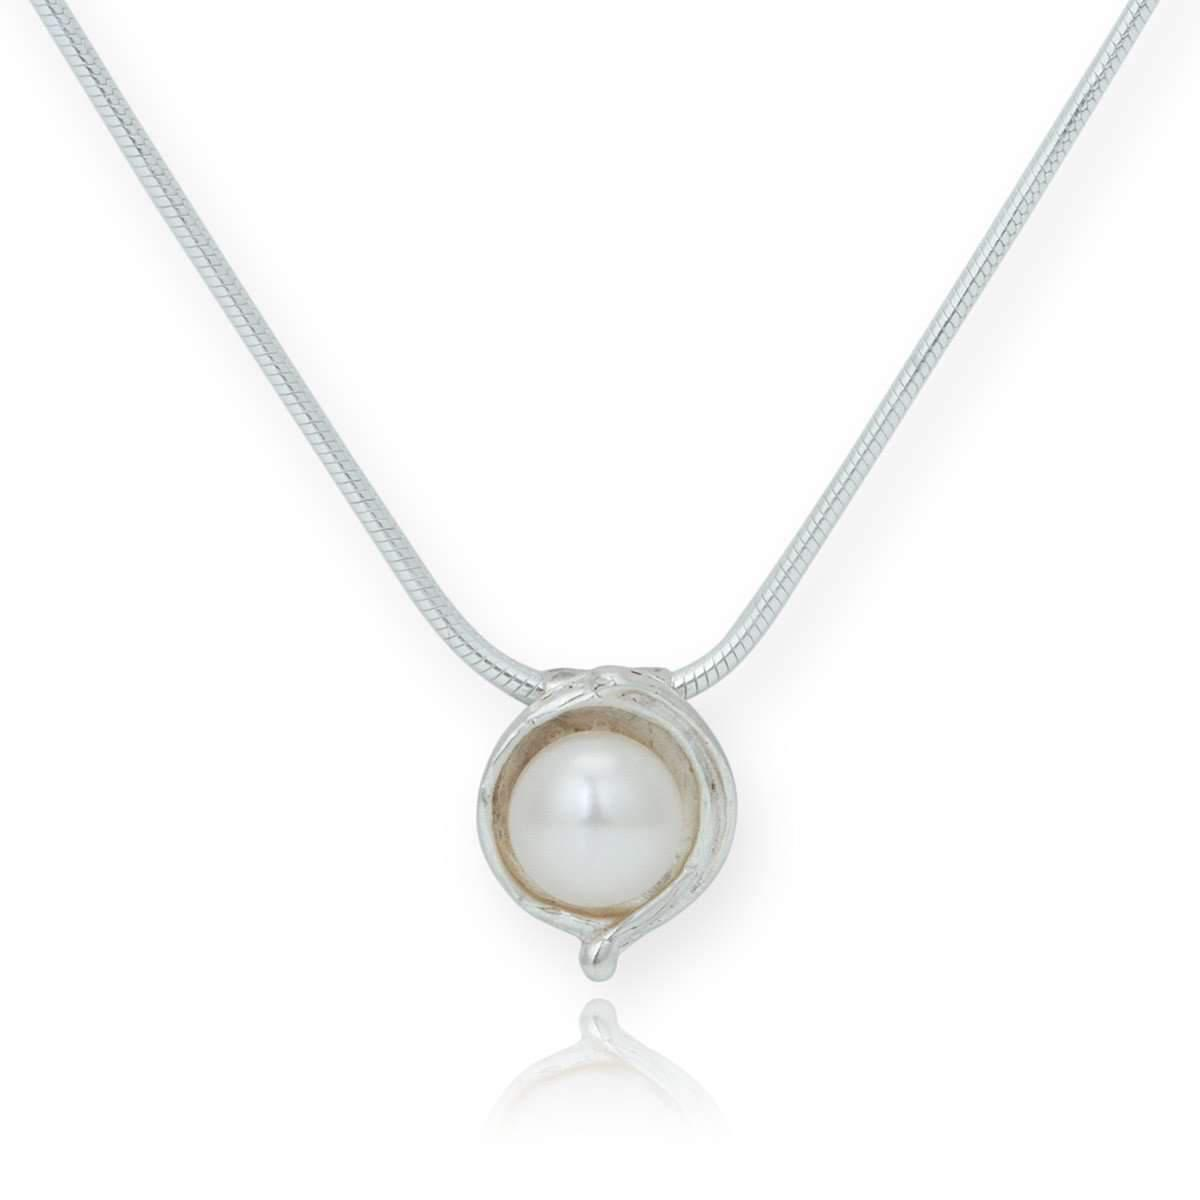 Lavan Sterling Silver & White Pearl Pendant - 16 Inches Kveapsw